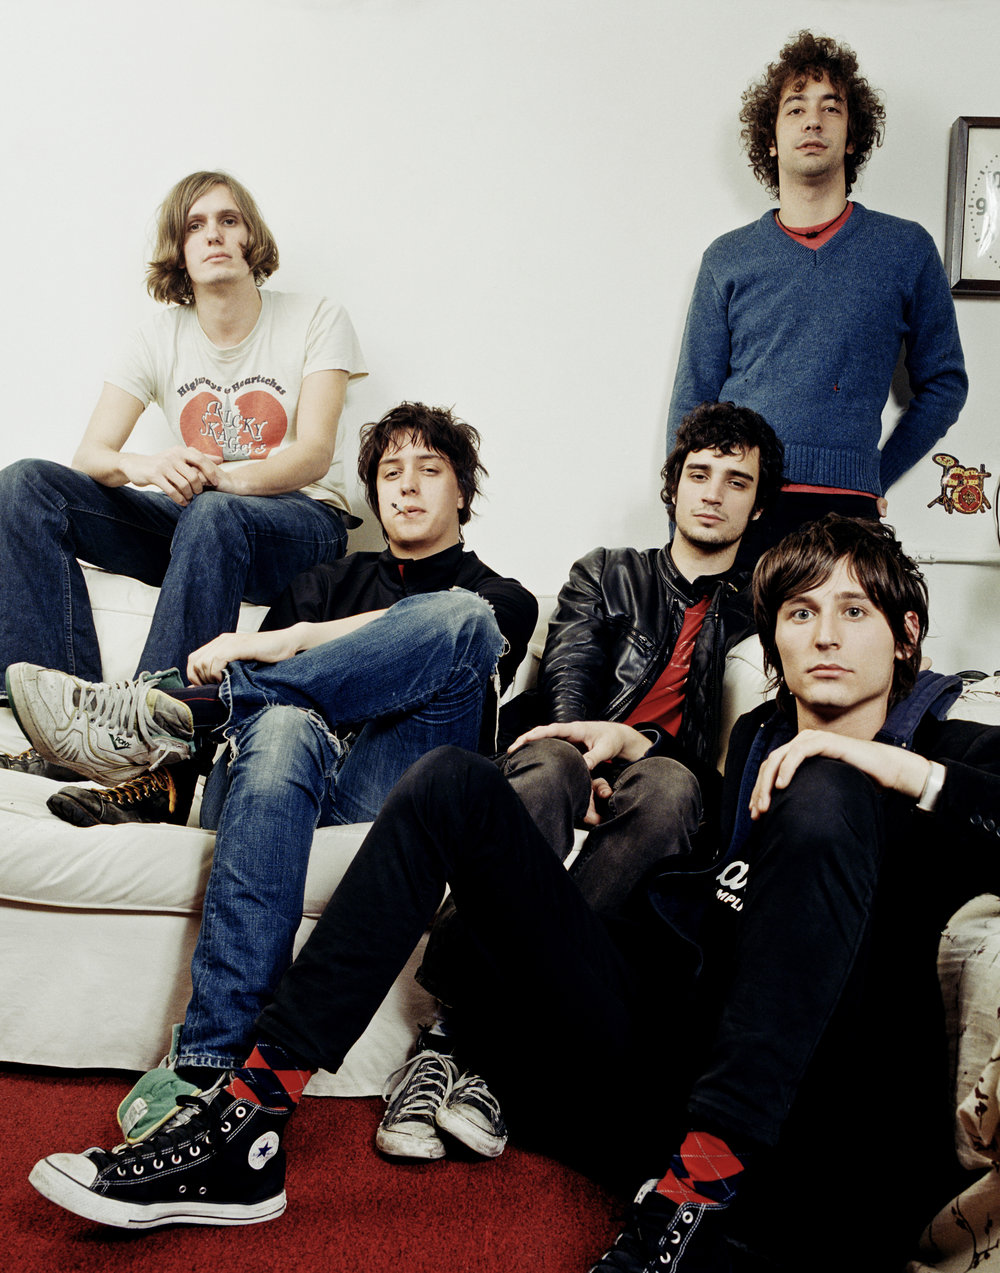 The Strokes, New York City, 2005